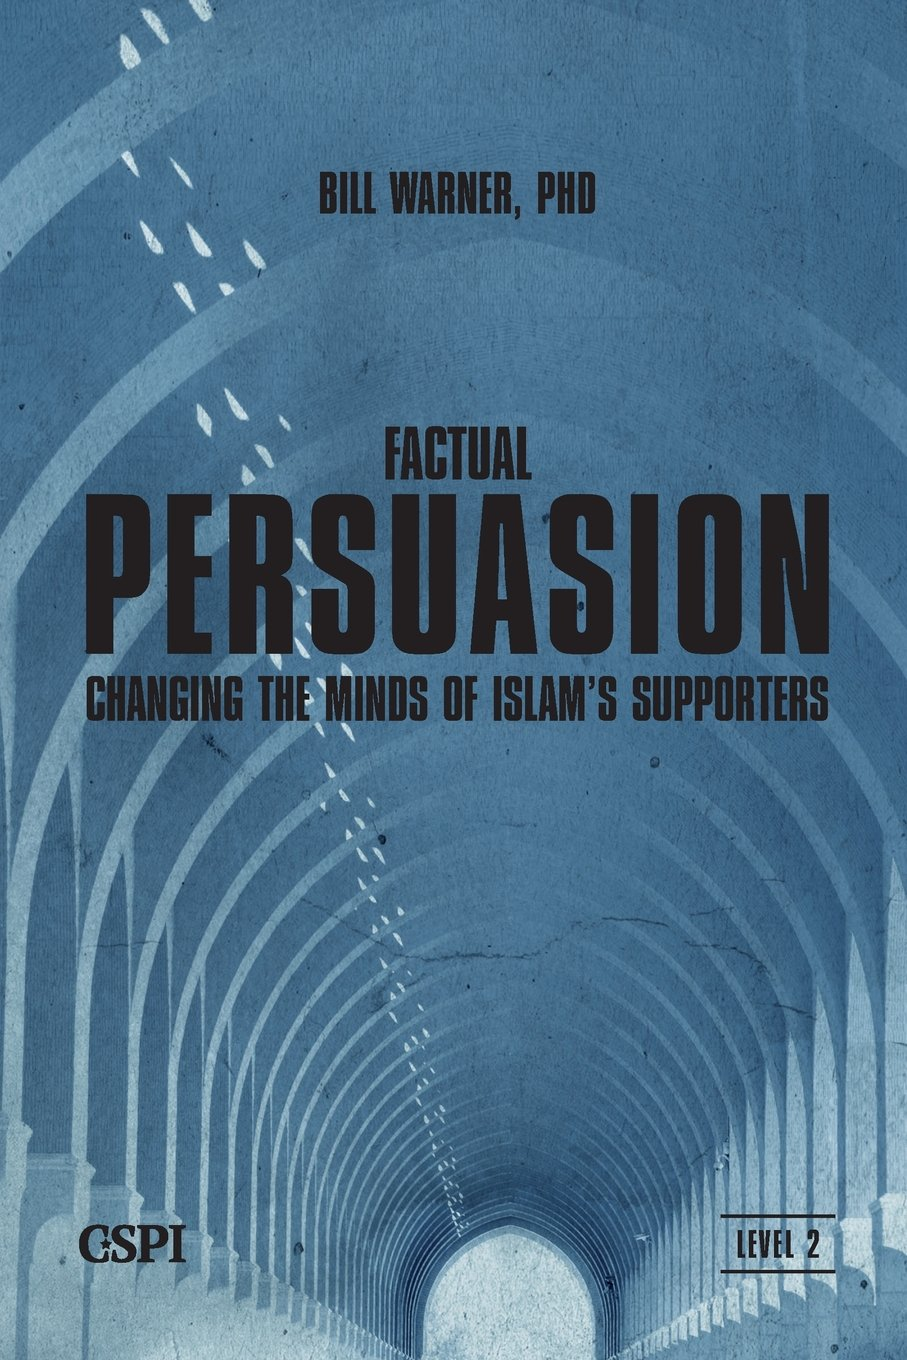 Factual Persuasion: Changing the Minds of Islam's Supporters